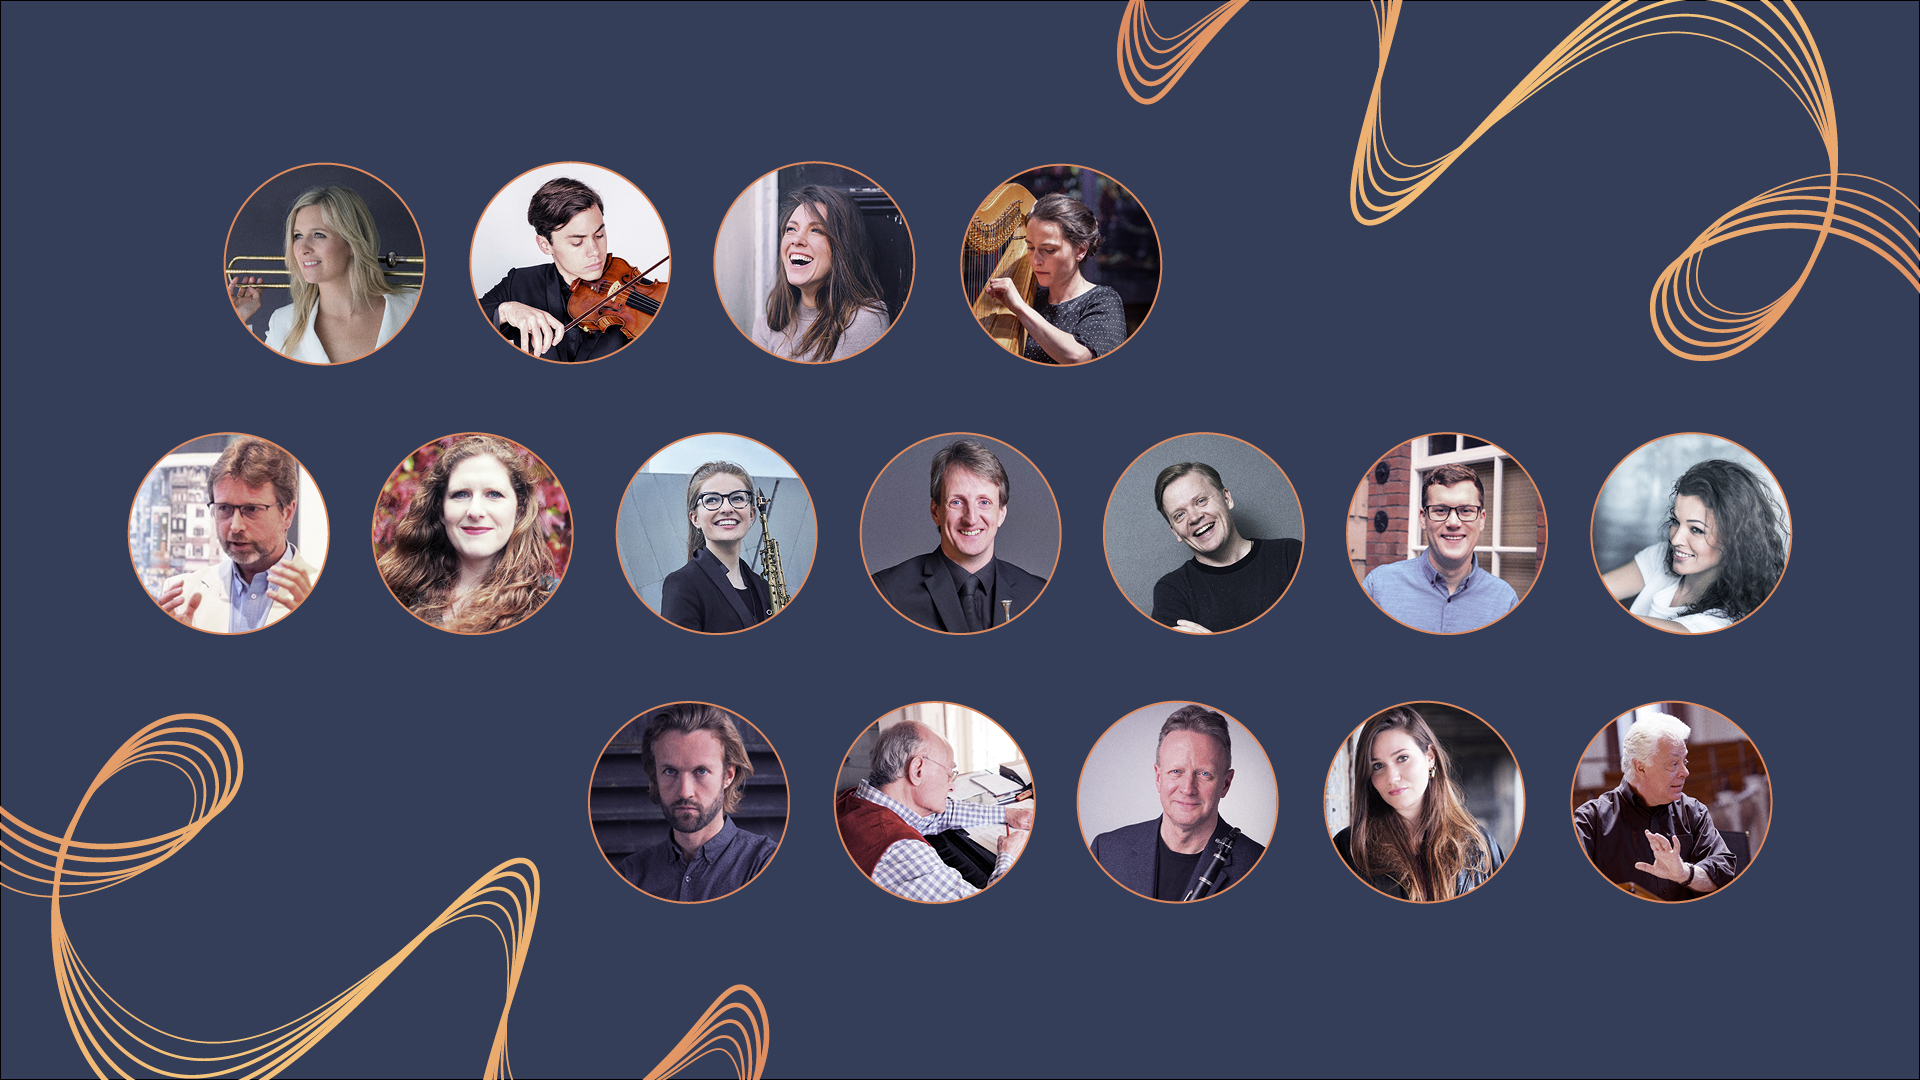 LCO Online Concert artists for the 7 May online concert